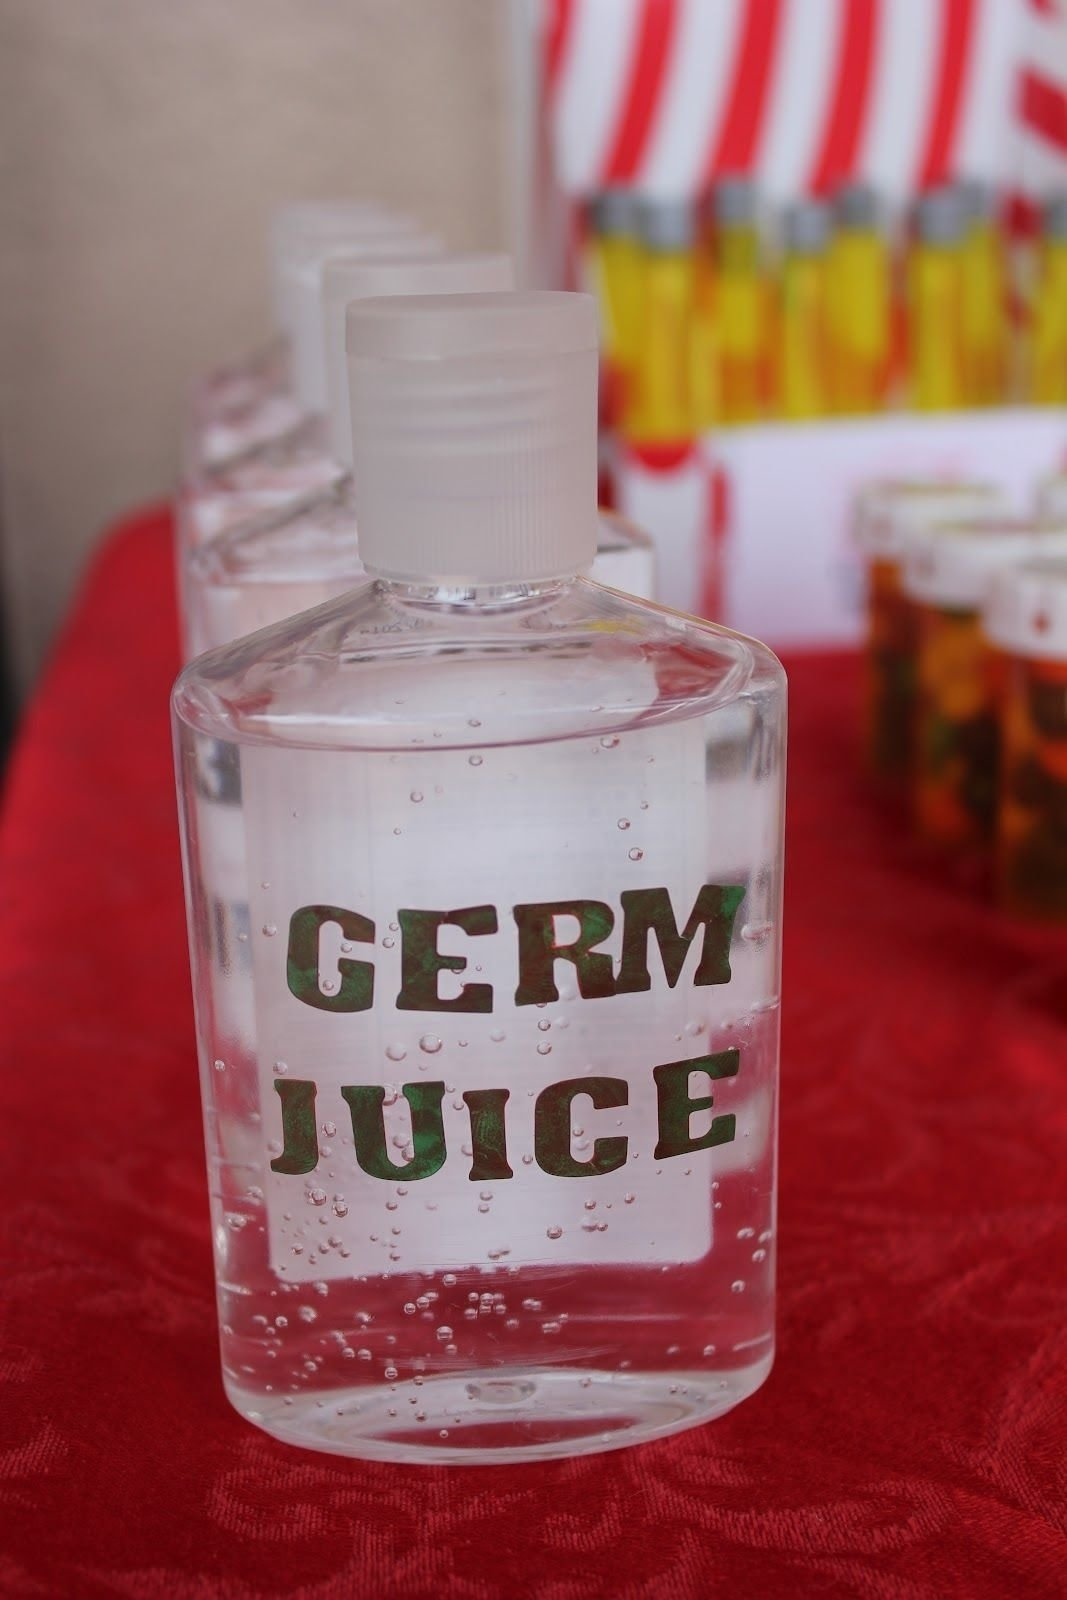 10 Great Nursing School Graduation Party Ideas nursing graduation party ideas the germ juice is hand sanitizer 2020